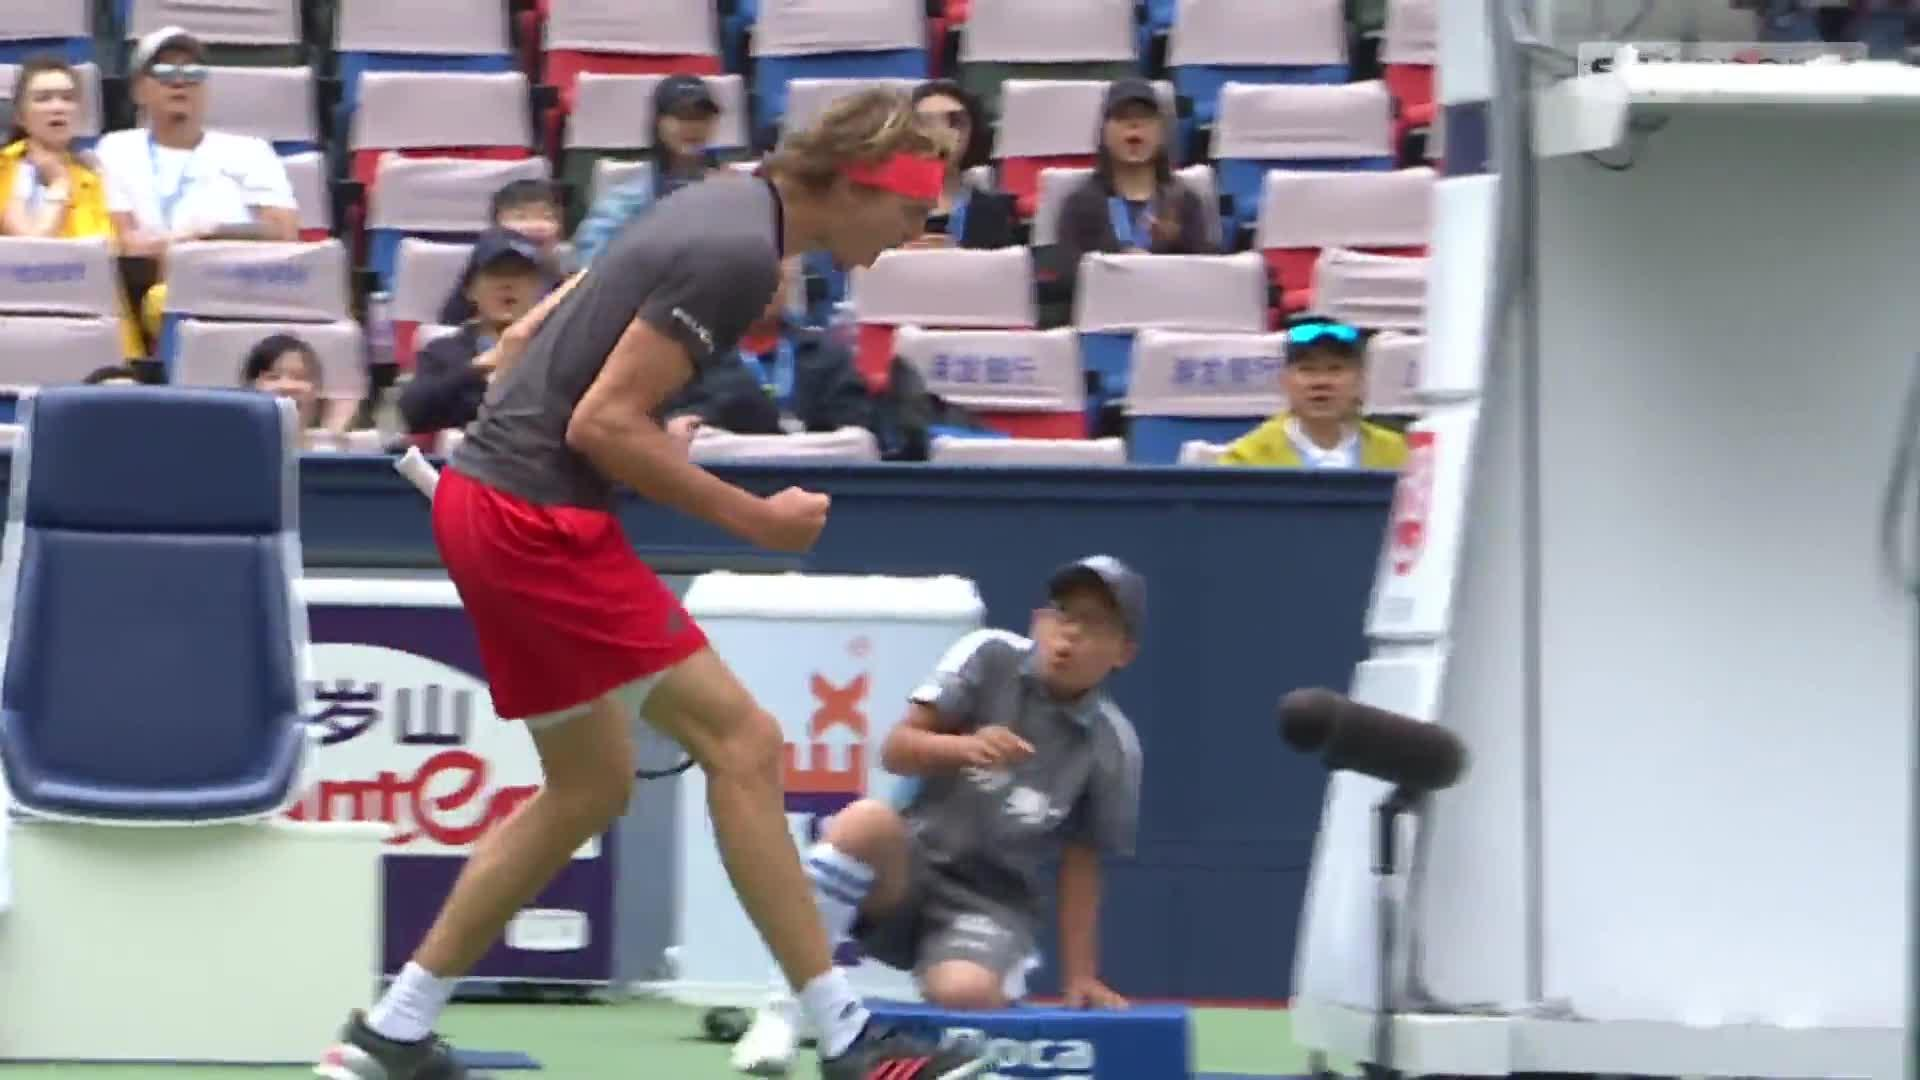 The ballboy was seen falling back in shock at the German tennis star's outburst of emotion